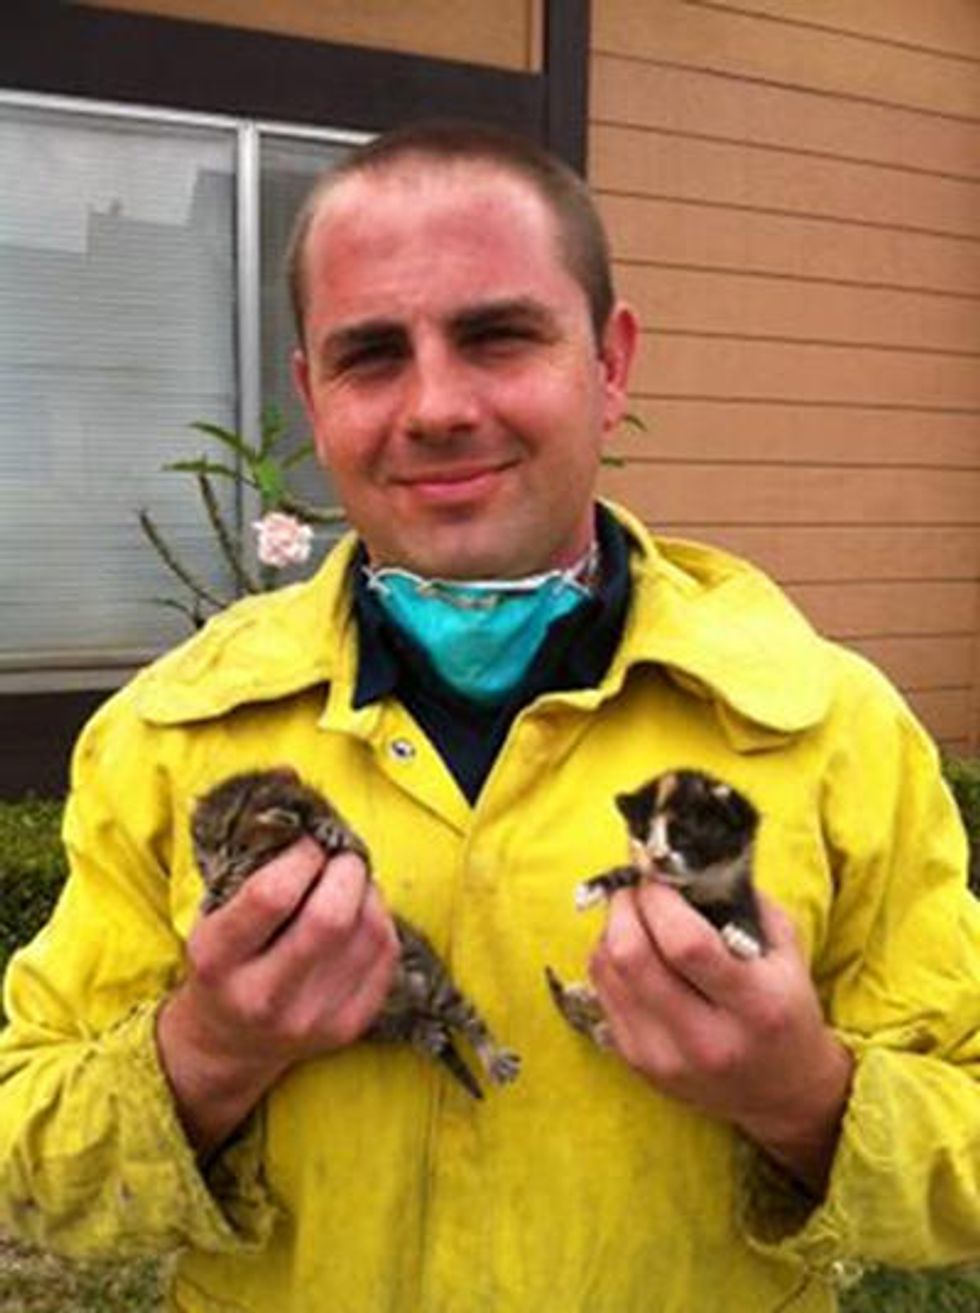 Firefighters Rescue Trapped Kittens From Wall & Find Them Temporary Homes